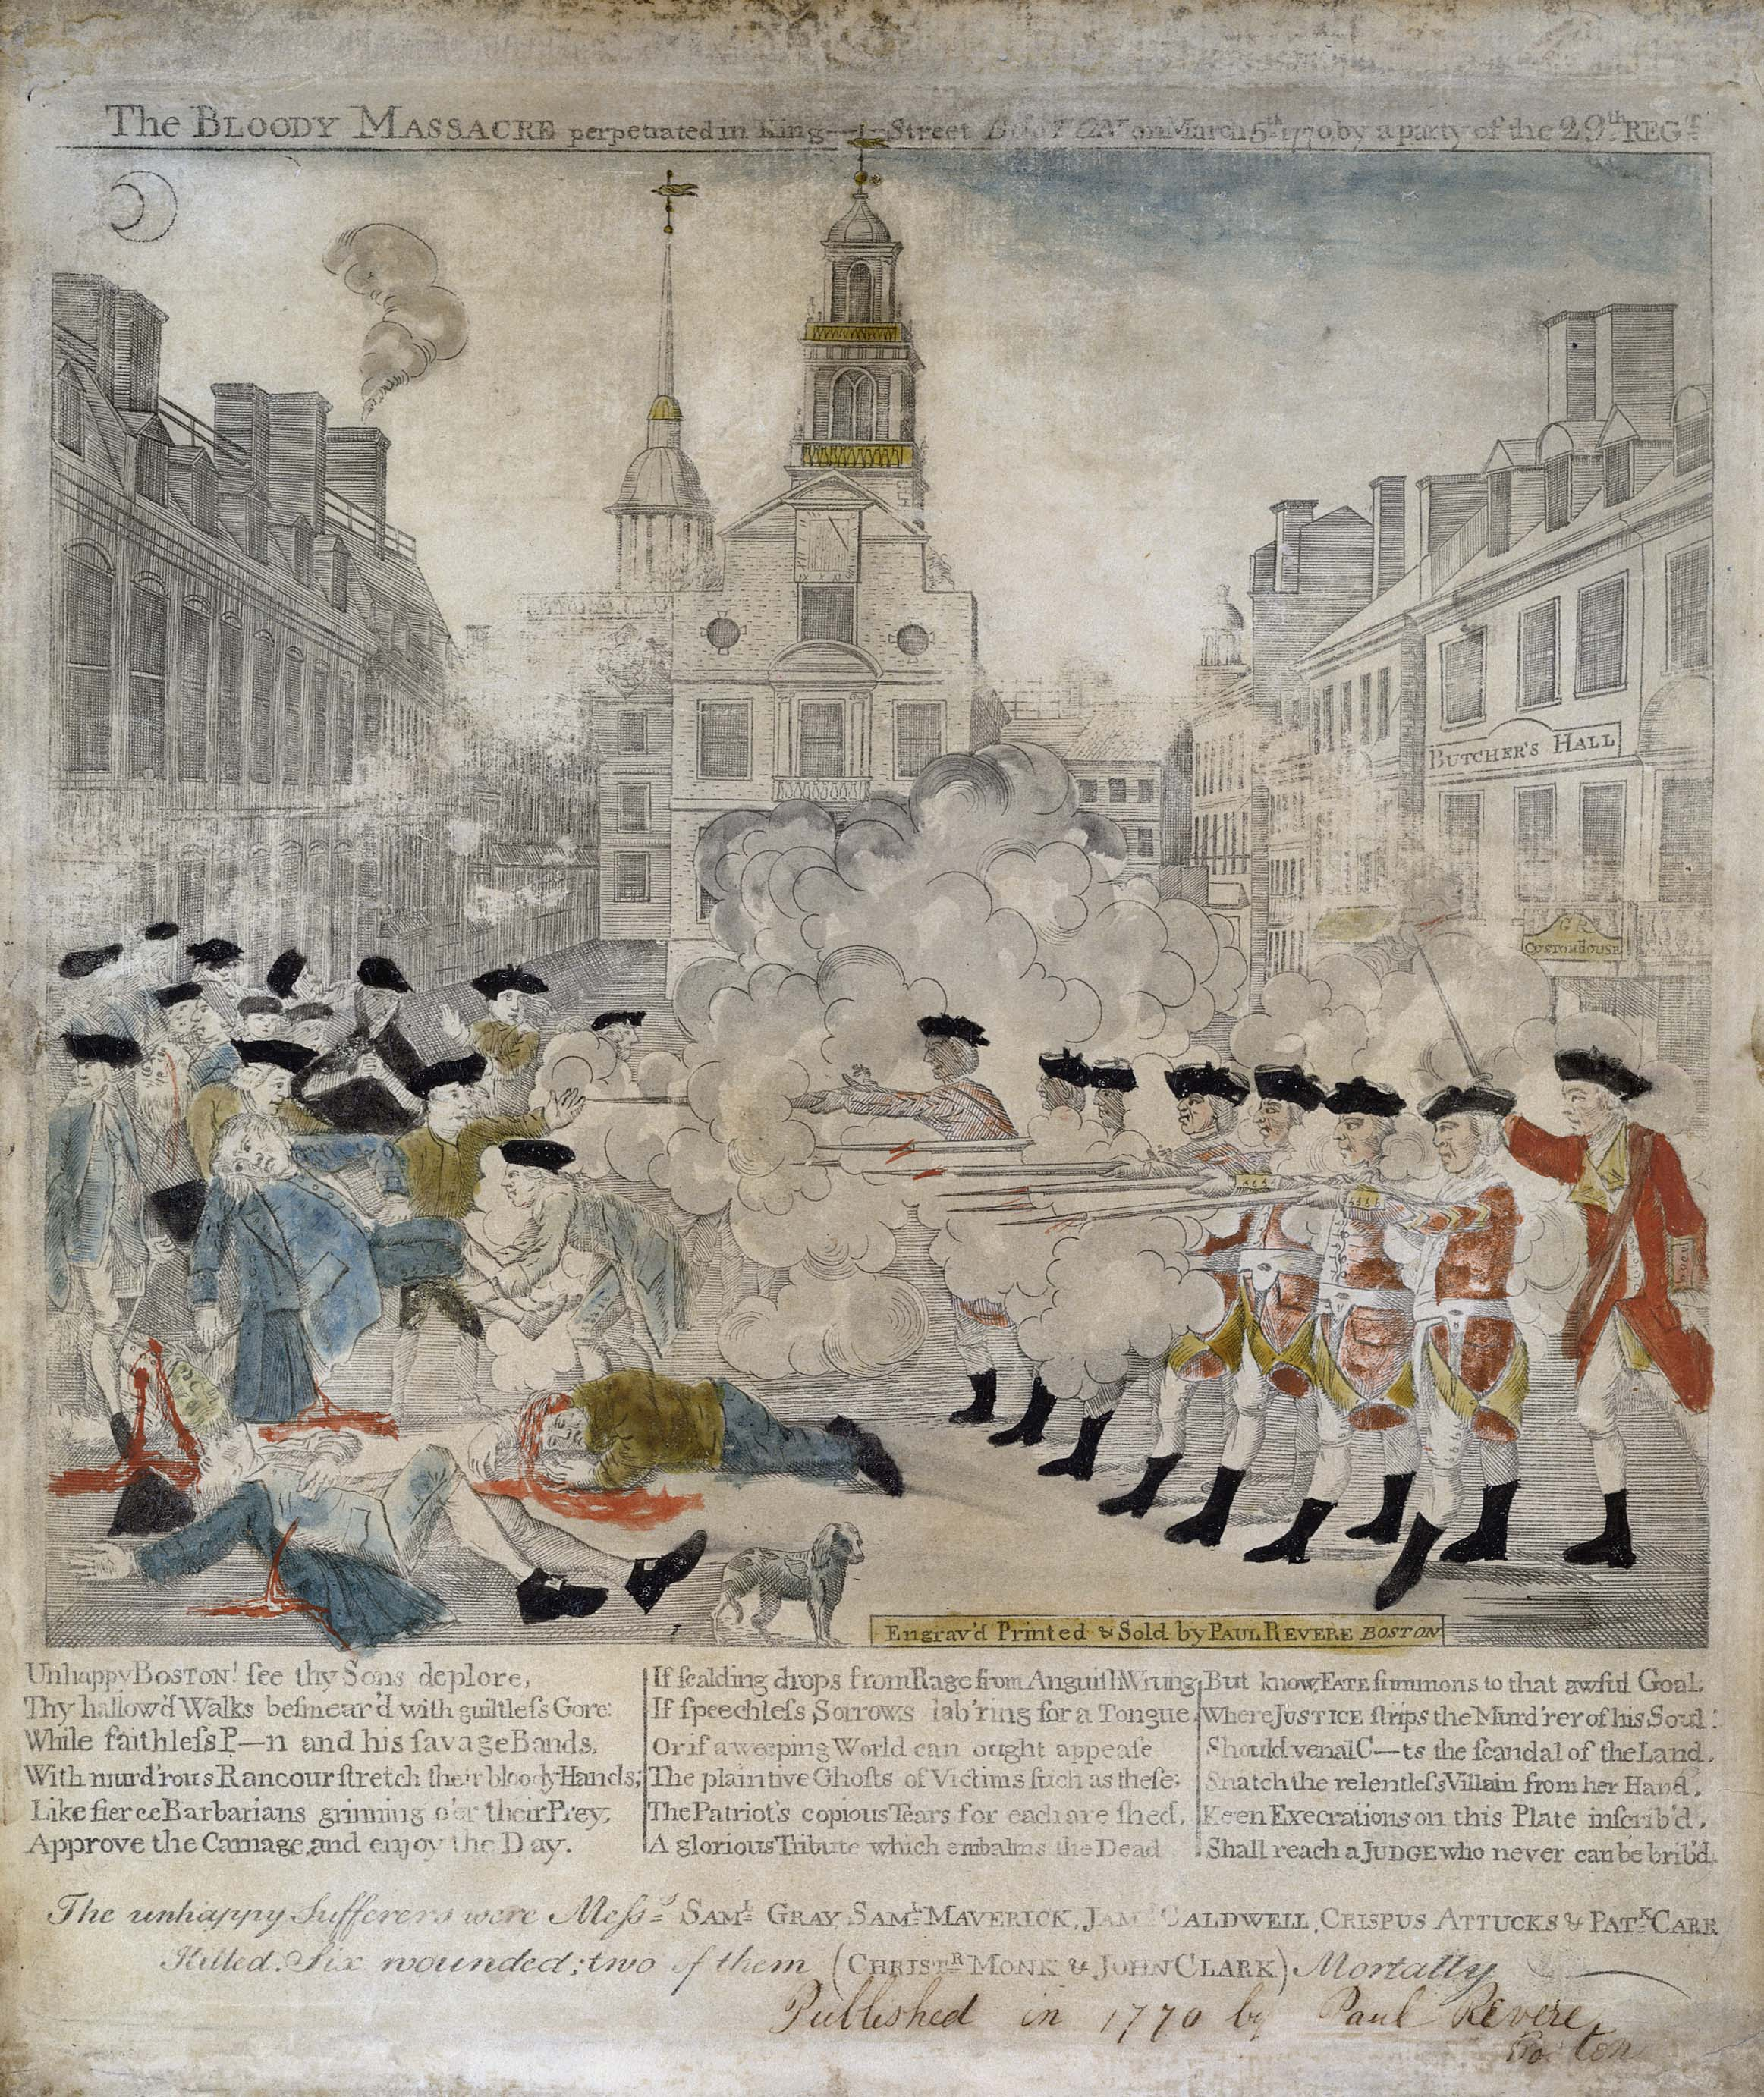 83e28ac91320 This iconic image of the Boston Massacre by Paul Revere sparked fury in  both Americans and